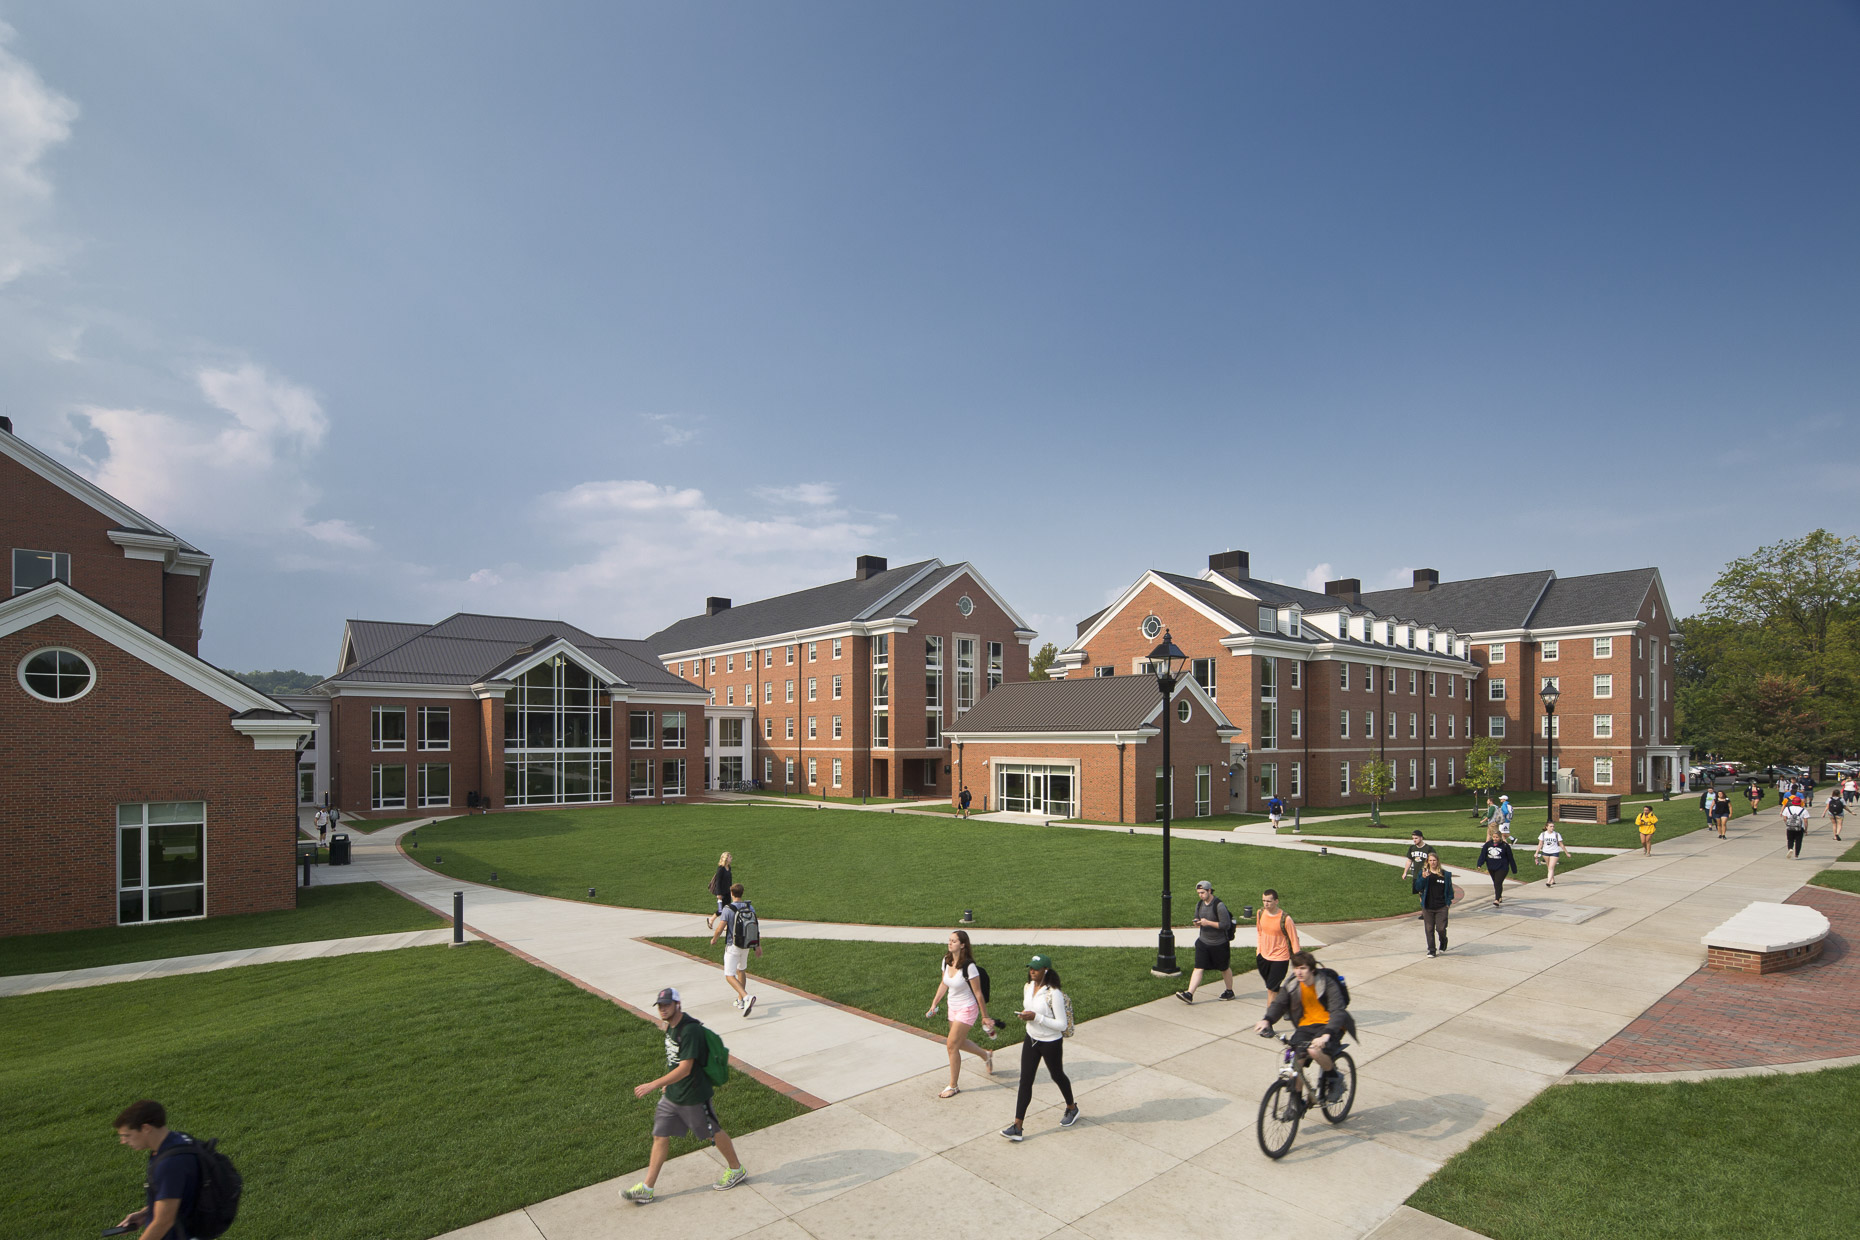 Ohio University Student Housing by Corna-Kokosing photographed by BRad Feinknopf based in Columbus, Ohio